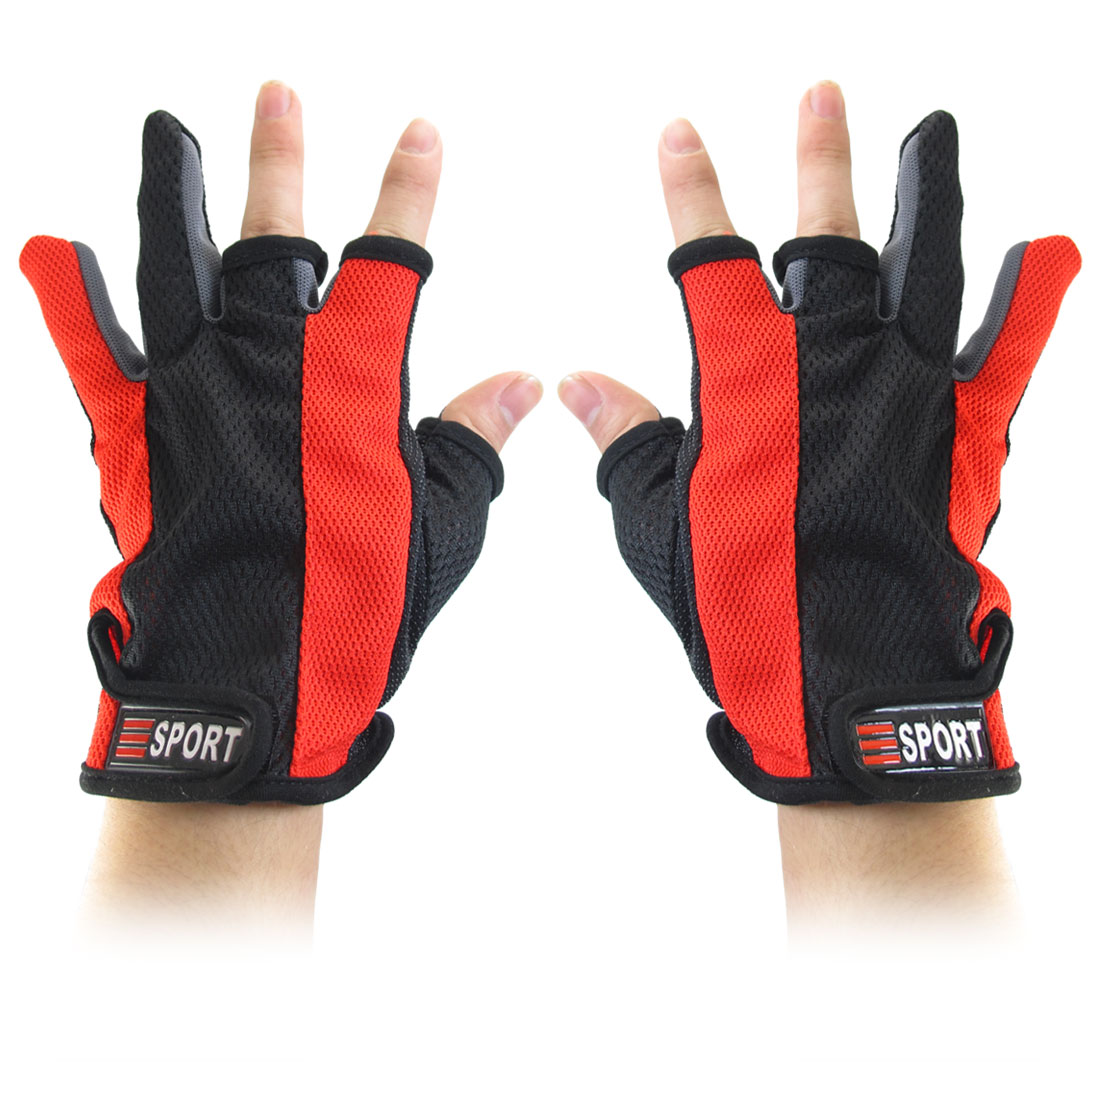 Nonslip Palm Detachable Closure 3 Fingerless Red Black Fishing Gloves